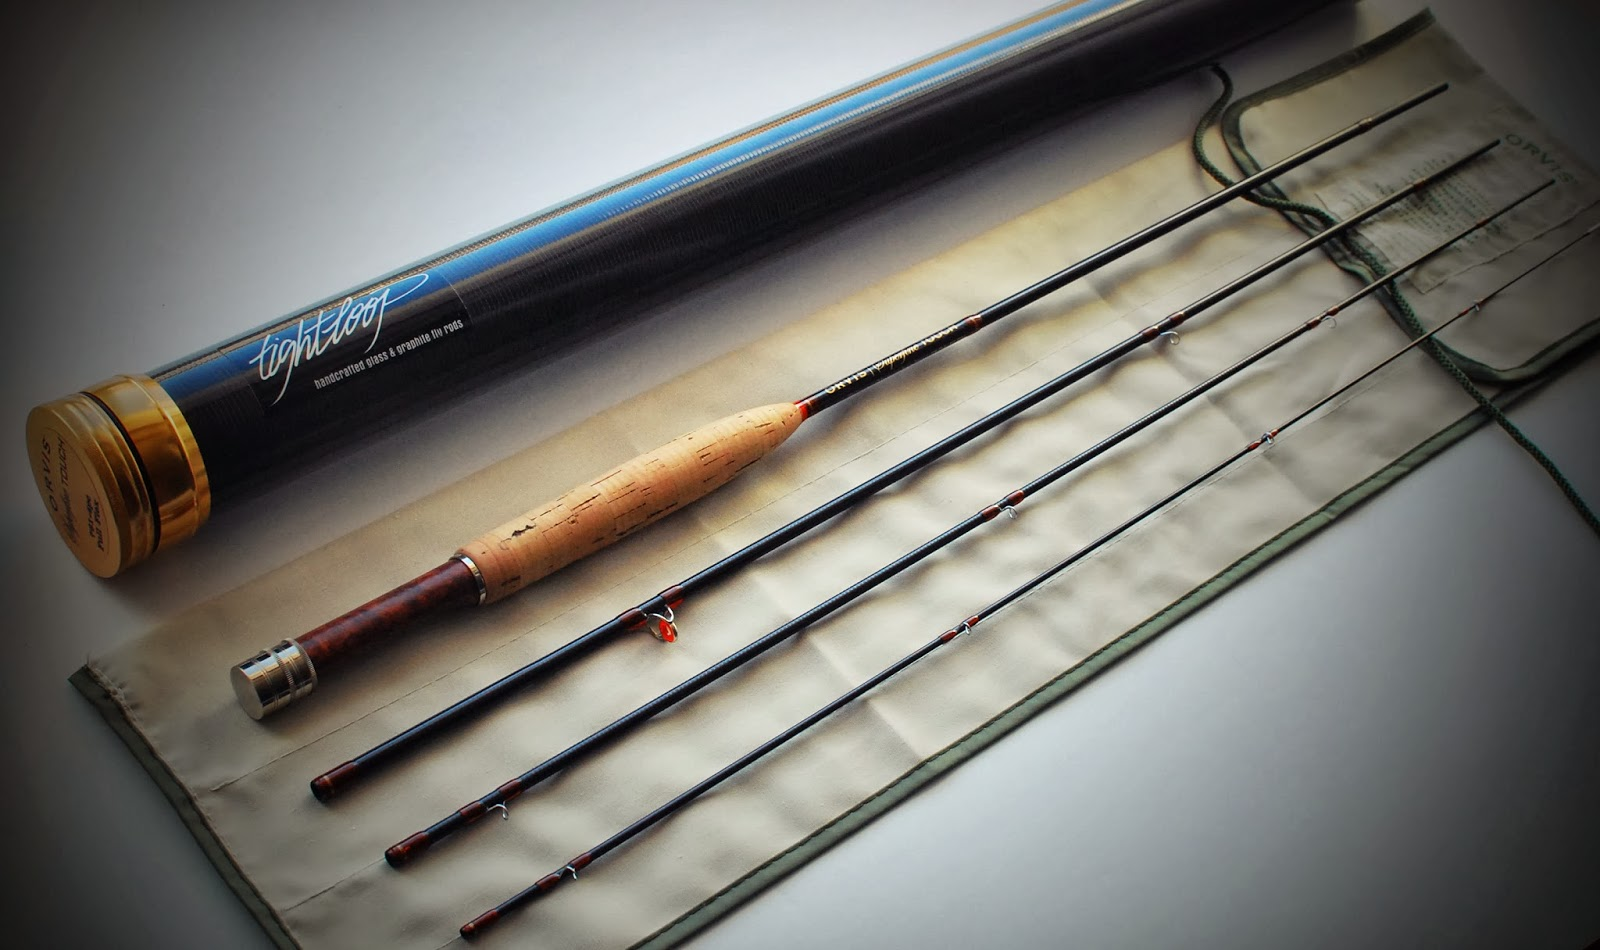 Handcrafted graphite and fiberglass fly rods: Orvis Superfine Touch